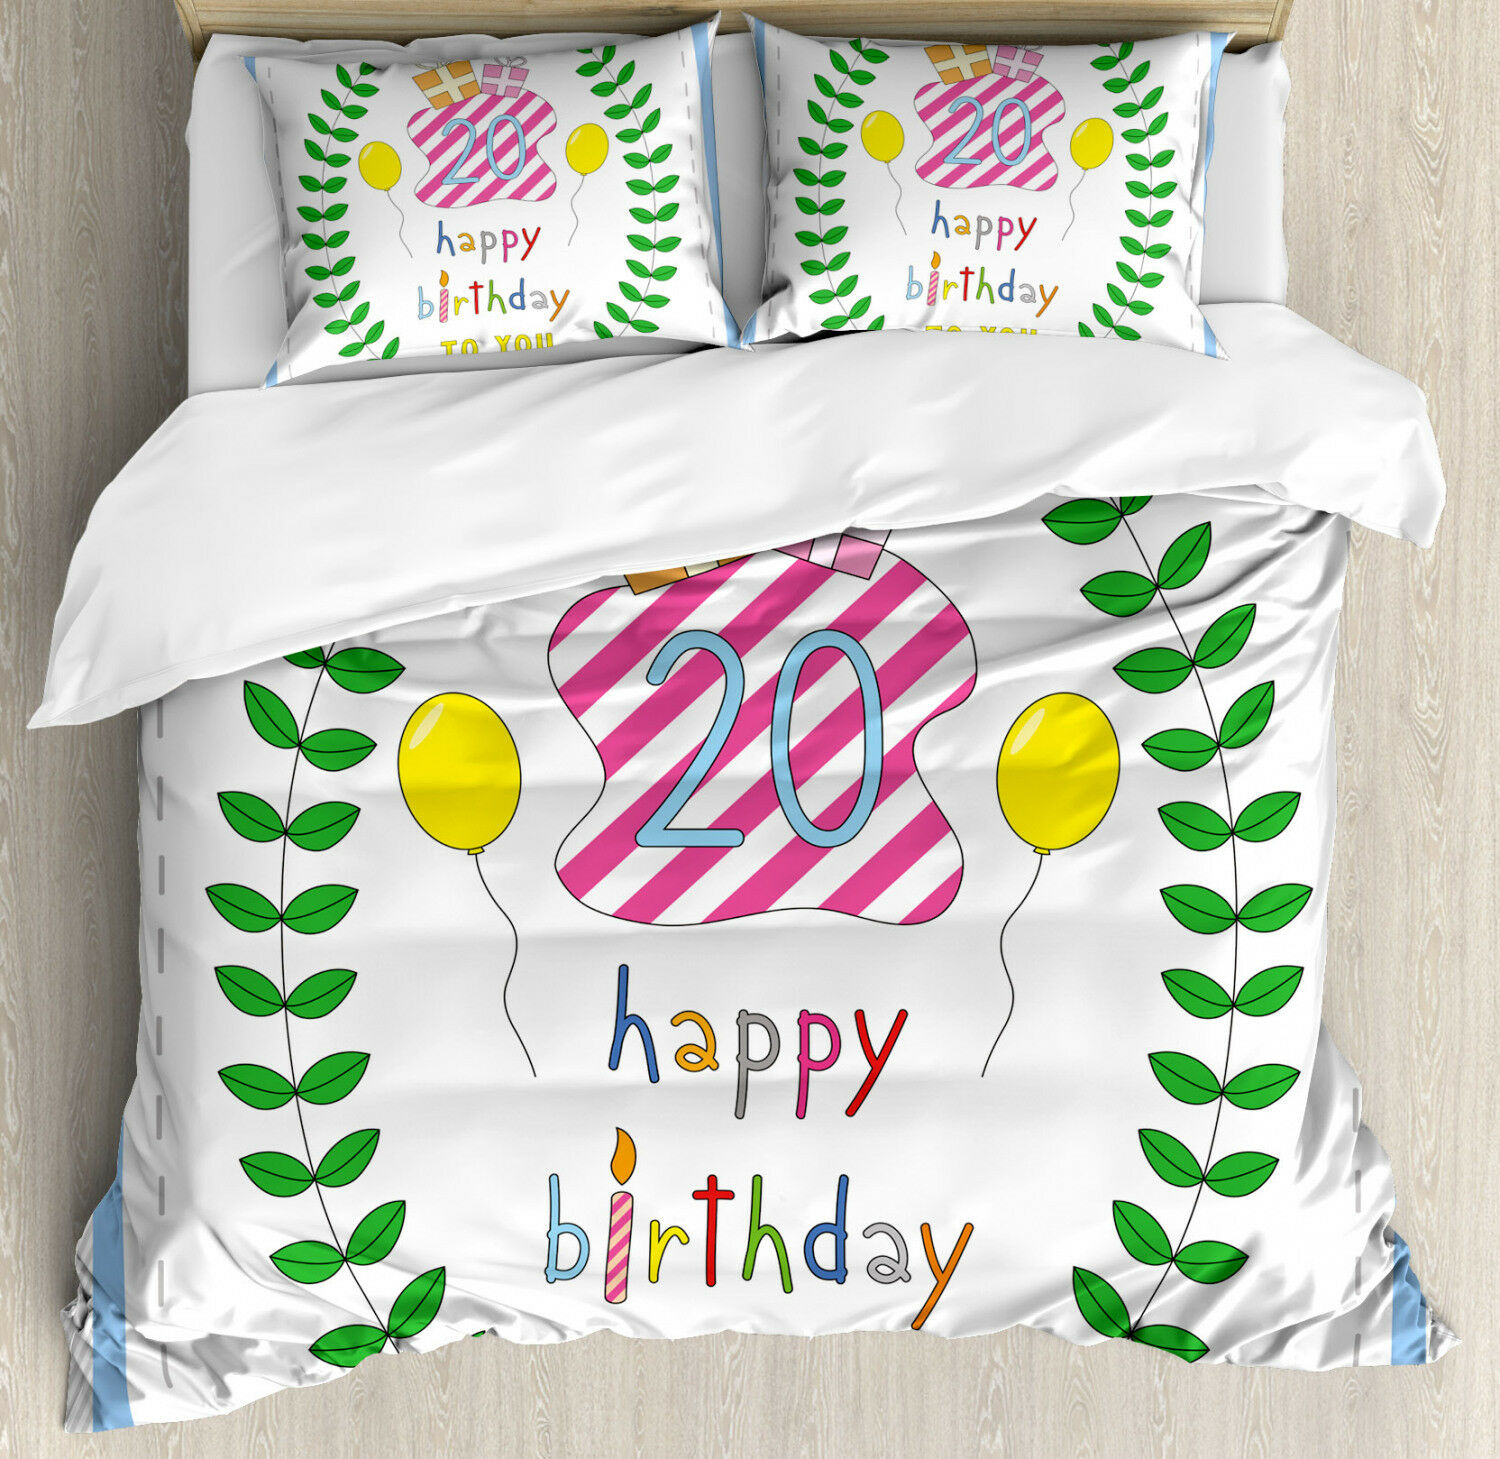 Party Duvet Cover Set with Pillow Shams Birthday Twenty Years Print